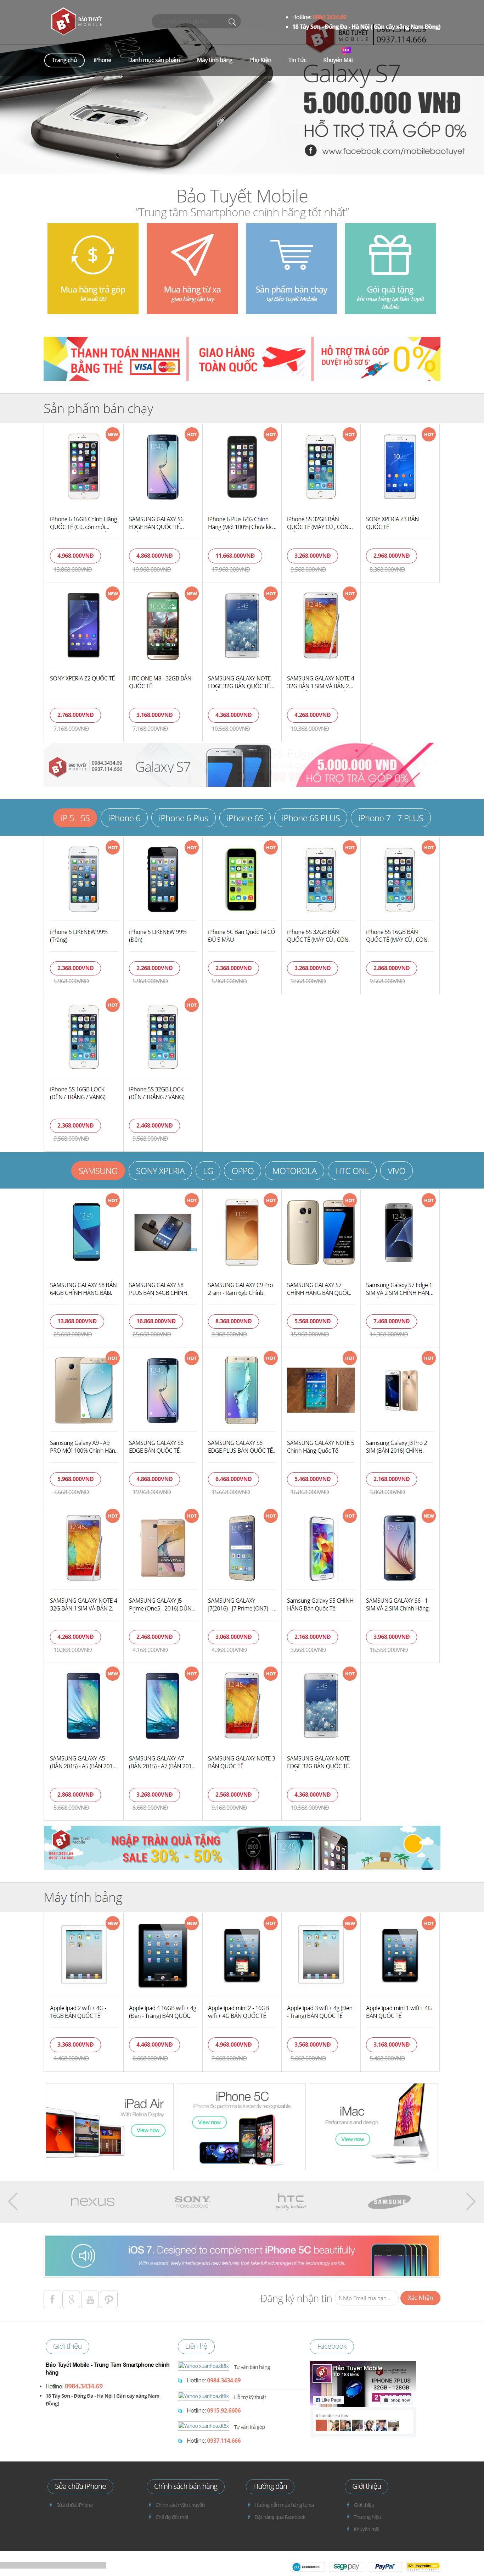 Thiết kế website Bảo Tuyết Mobile